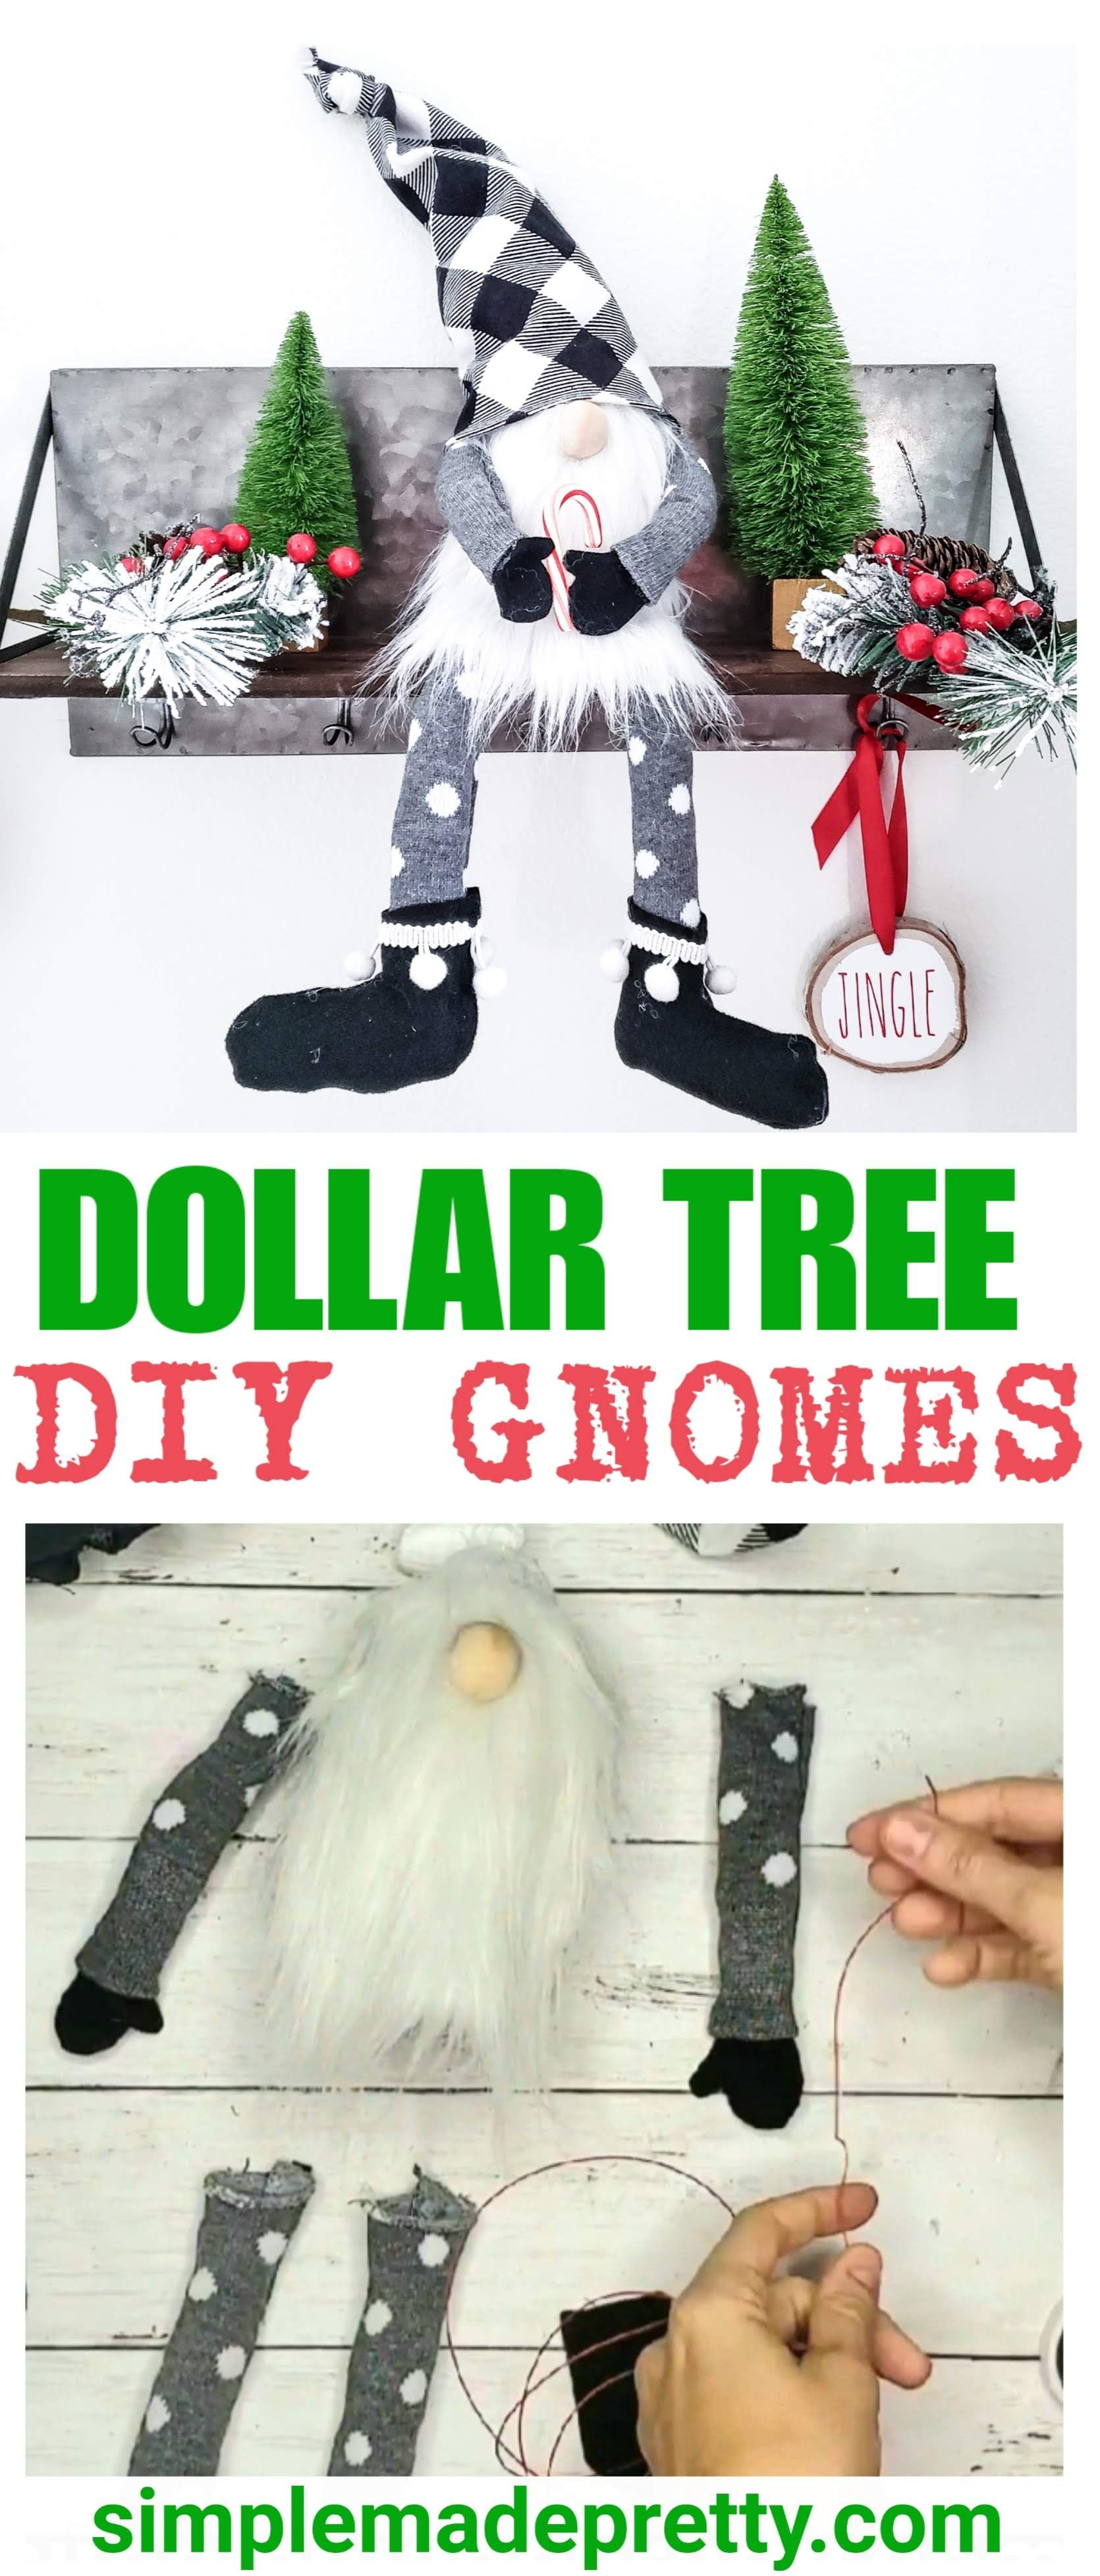 How To Make Gnomes With Arms and Legs Dollar tree crafts